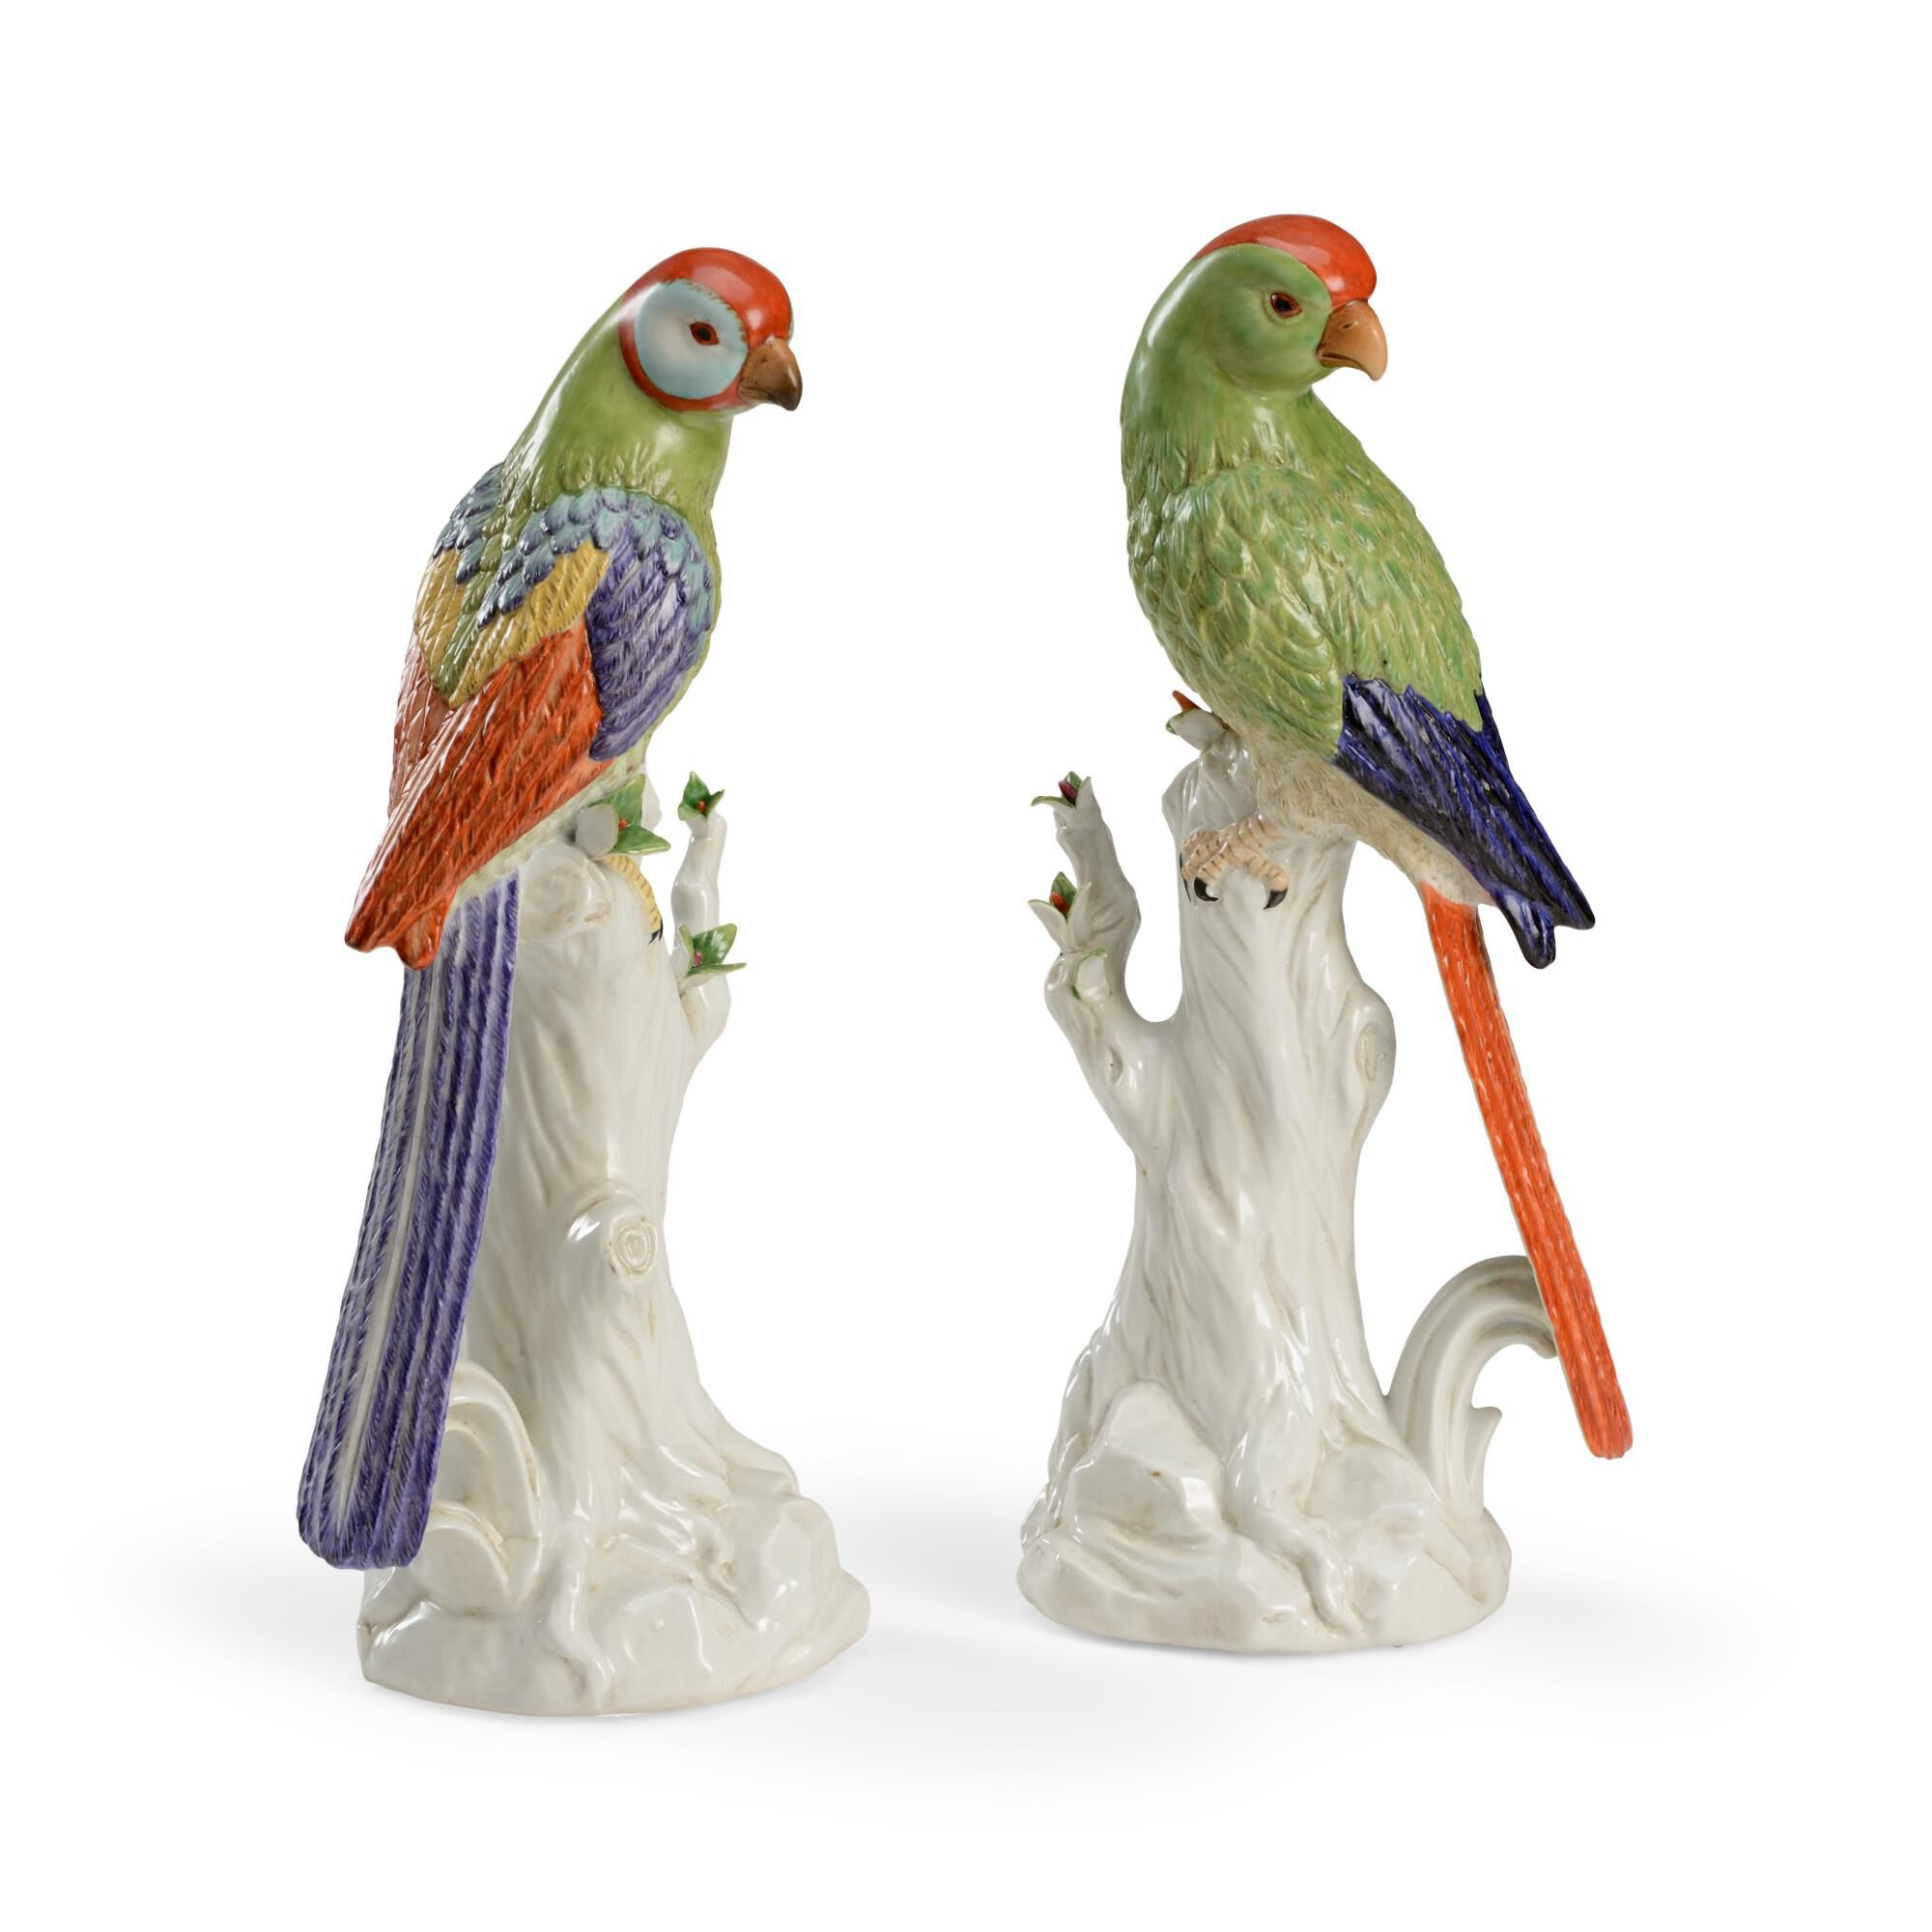 Chelsea House Port Royal Bird Figurine Port Royal Bird - 382590 - Tropical (2203813) photo